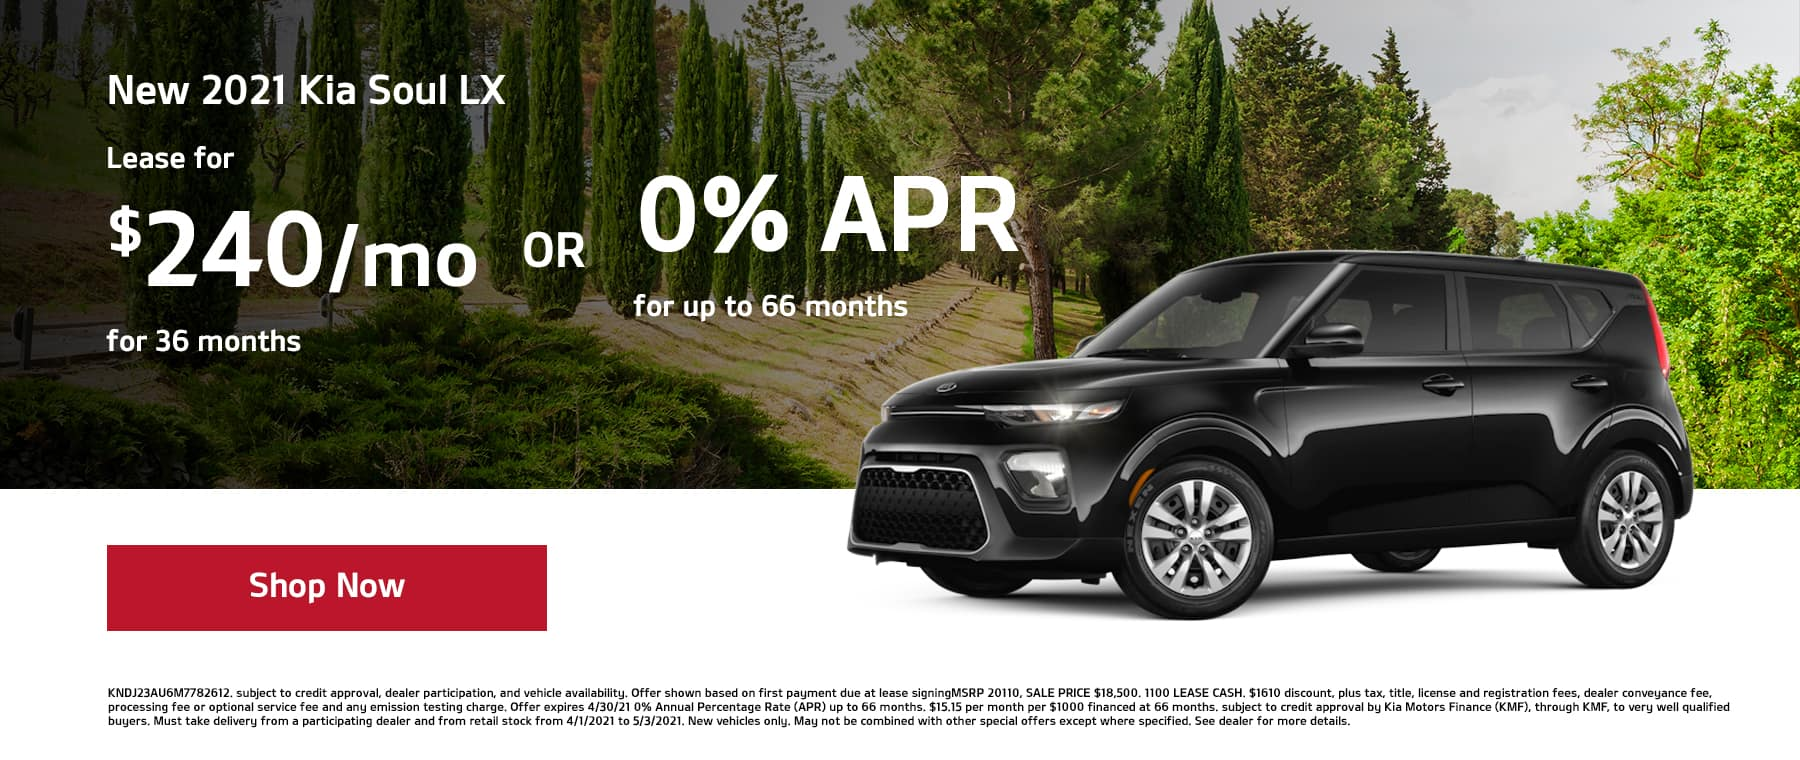 ease a New 2021 Kia Soul LX Soul for $240/mo for 36mos or 0% APR for up to 66mos!